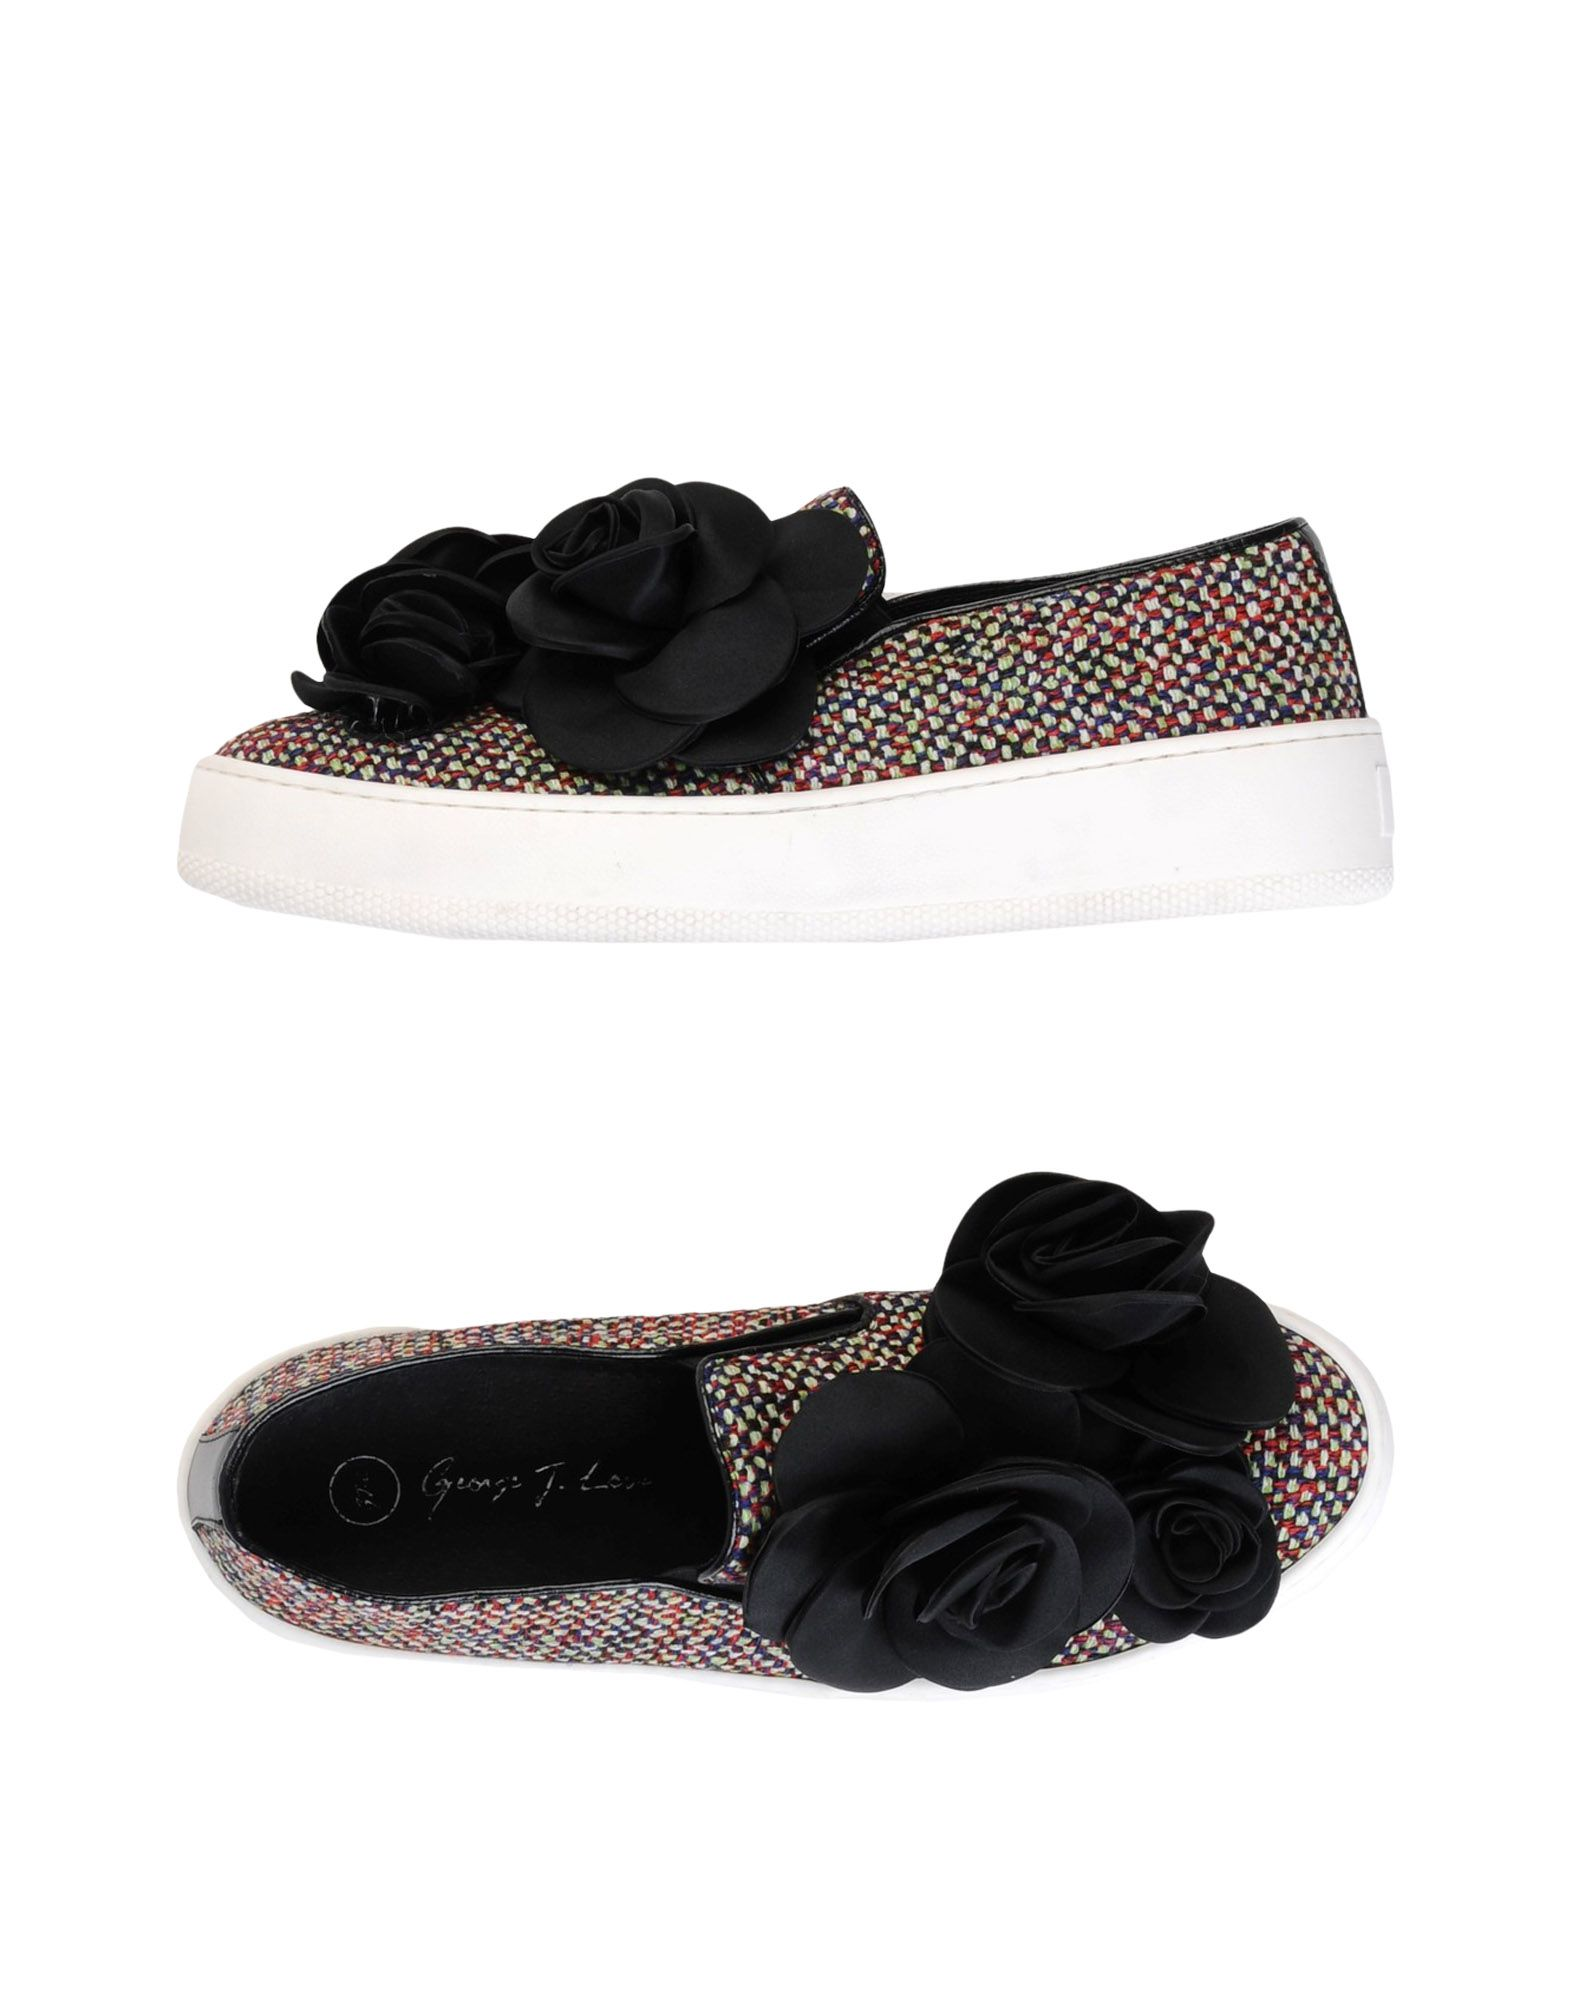 Baskets George J. Love Femme - Baskets George J. Love Rouge Chaussures casual sauvages